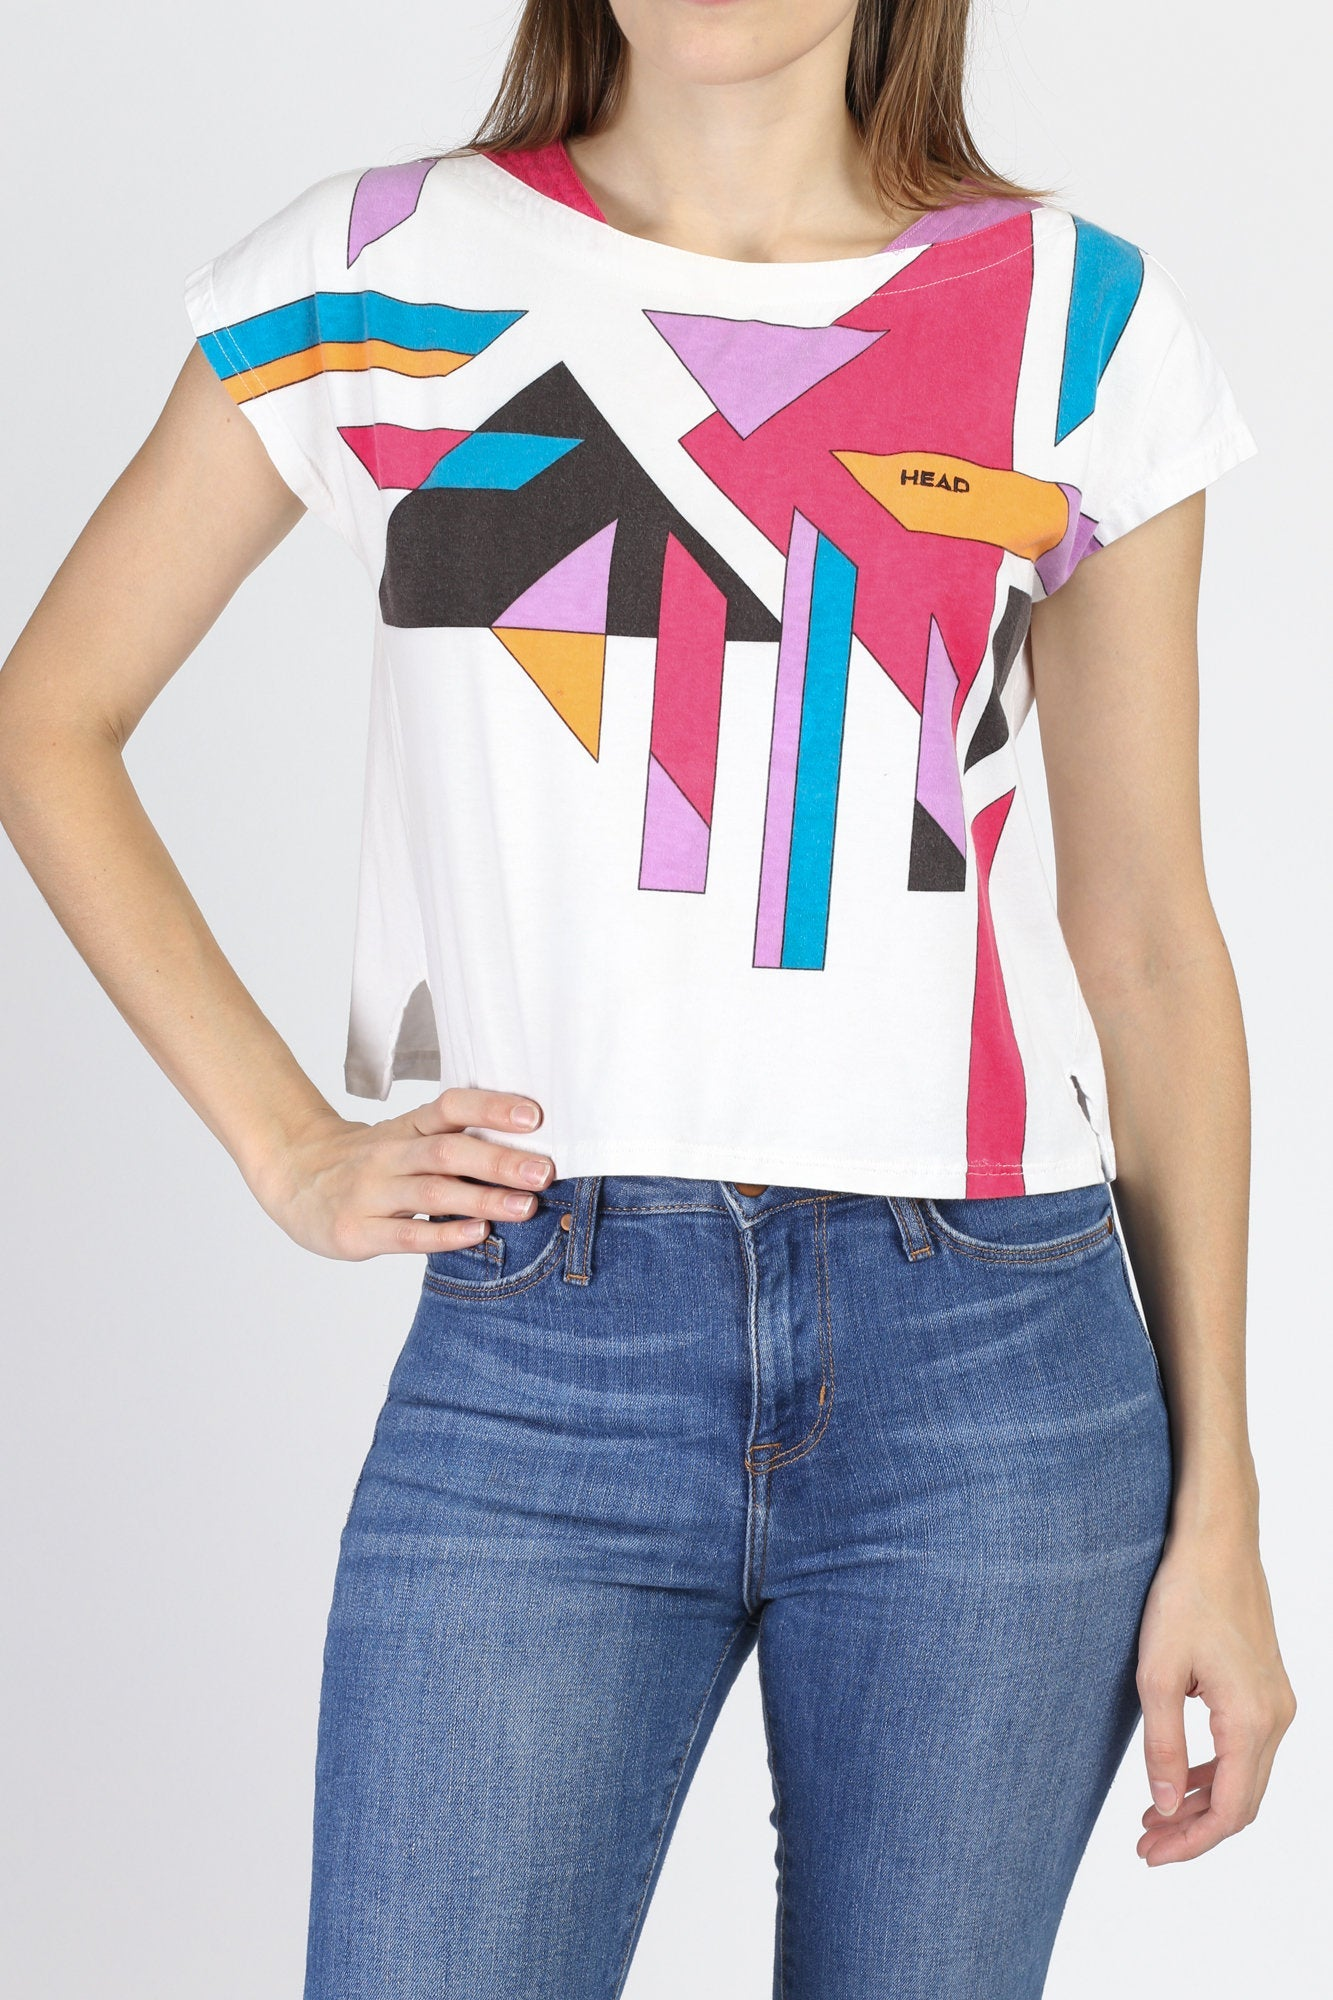 90s Head Cropped Geometric Graphic Tee - Small